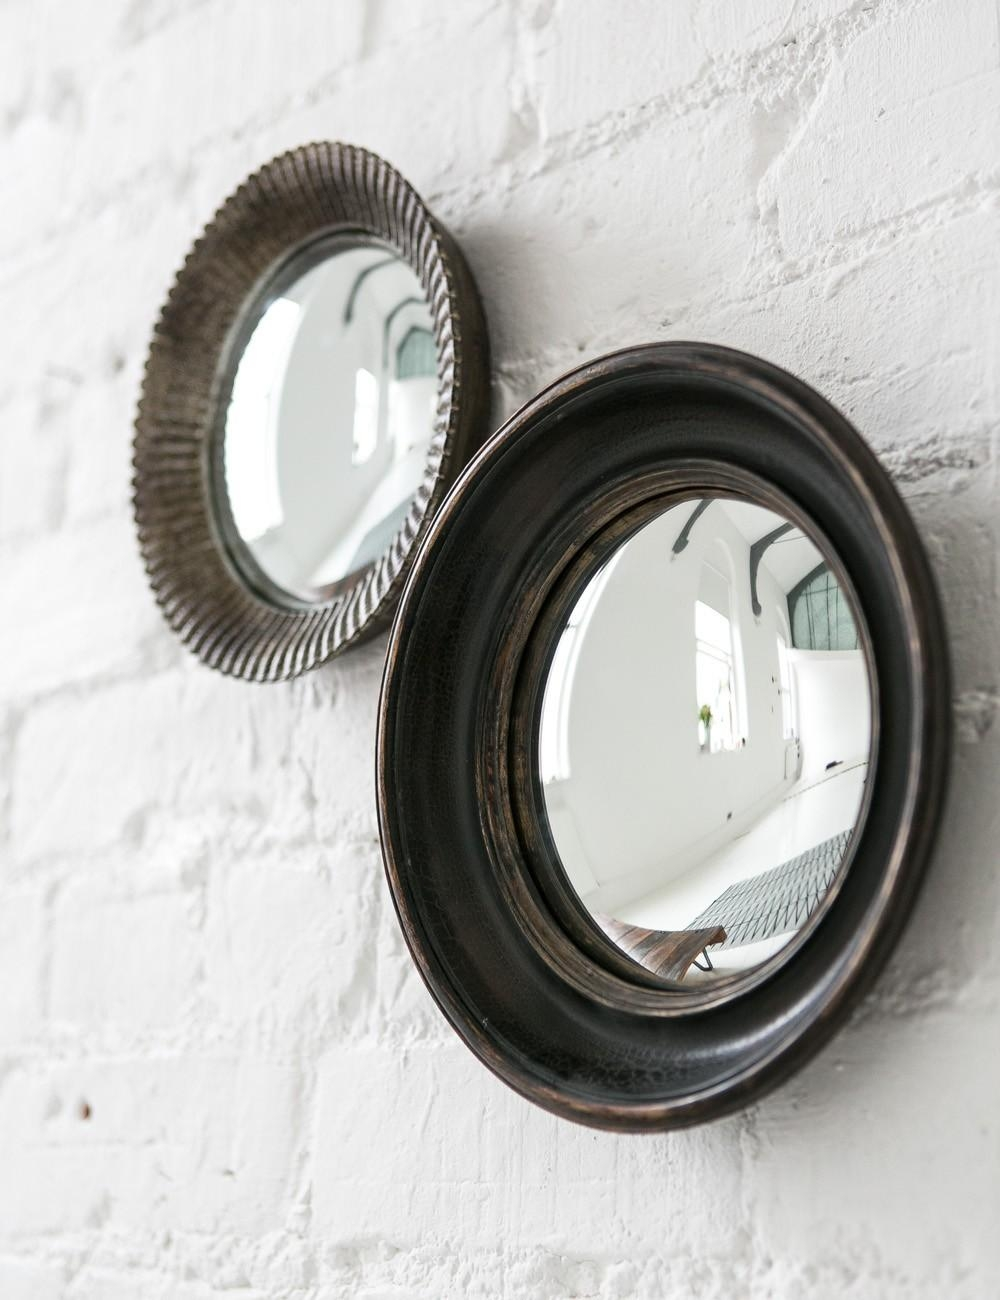 Small Convex Mirror For Creating Striking Wall Decoration | Homesfeed With Regard To Small Convex Mirrors For Sale (View 5 of 20)